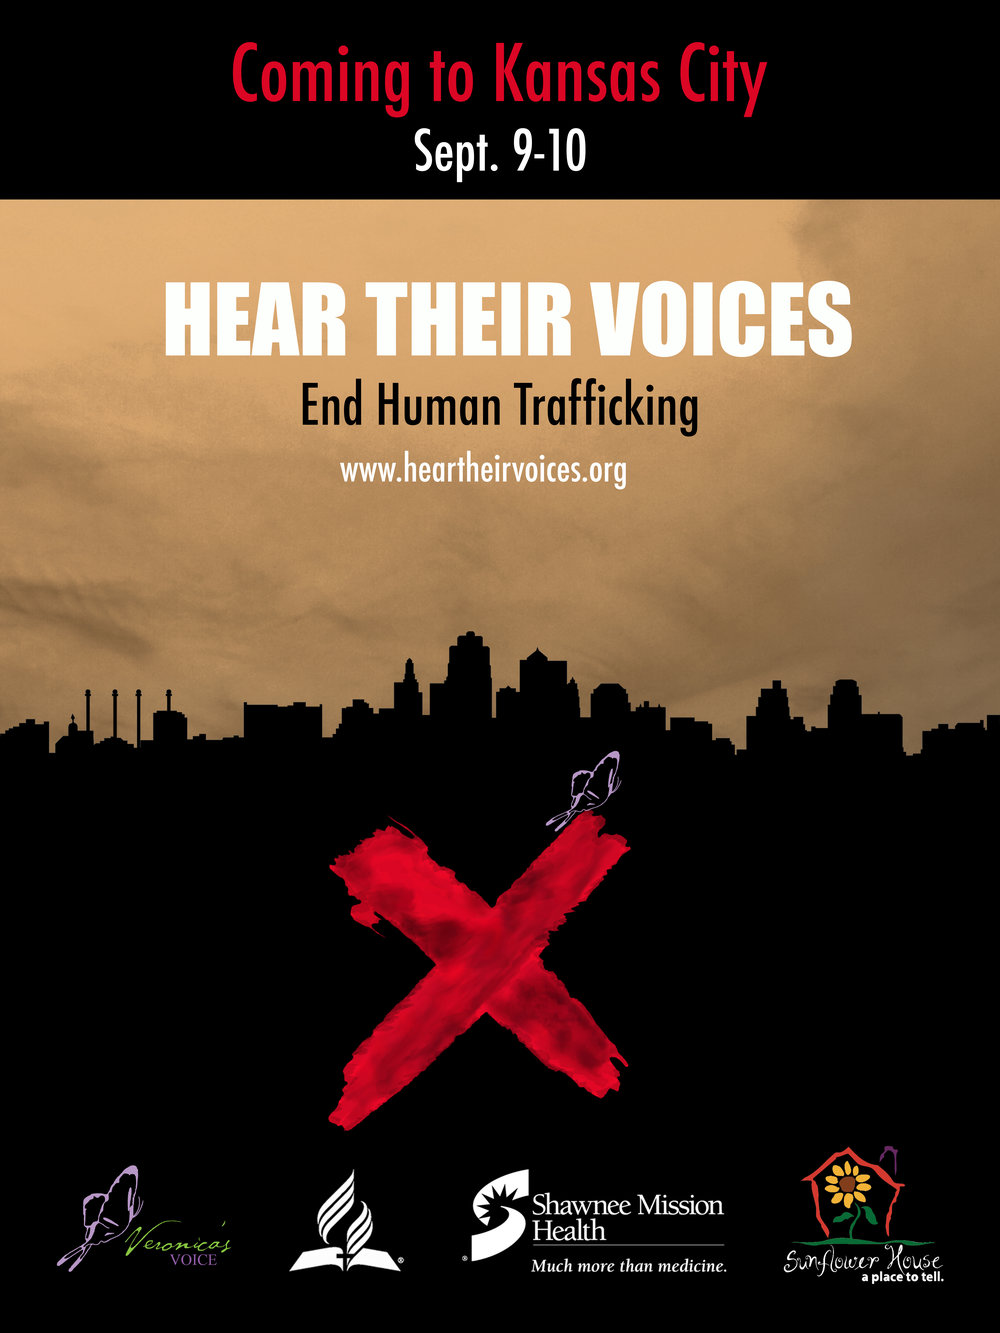 Hear Their Voices Poster jpg 6480 x 8640 (6.6 MB)